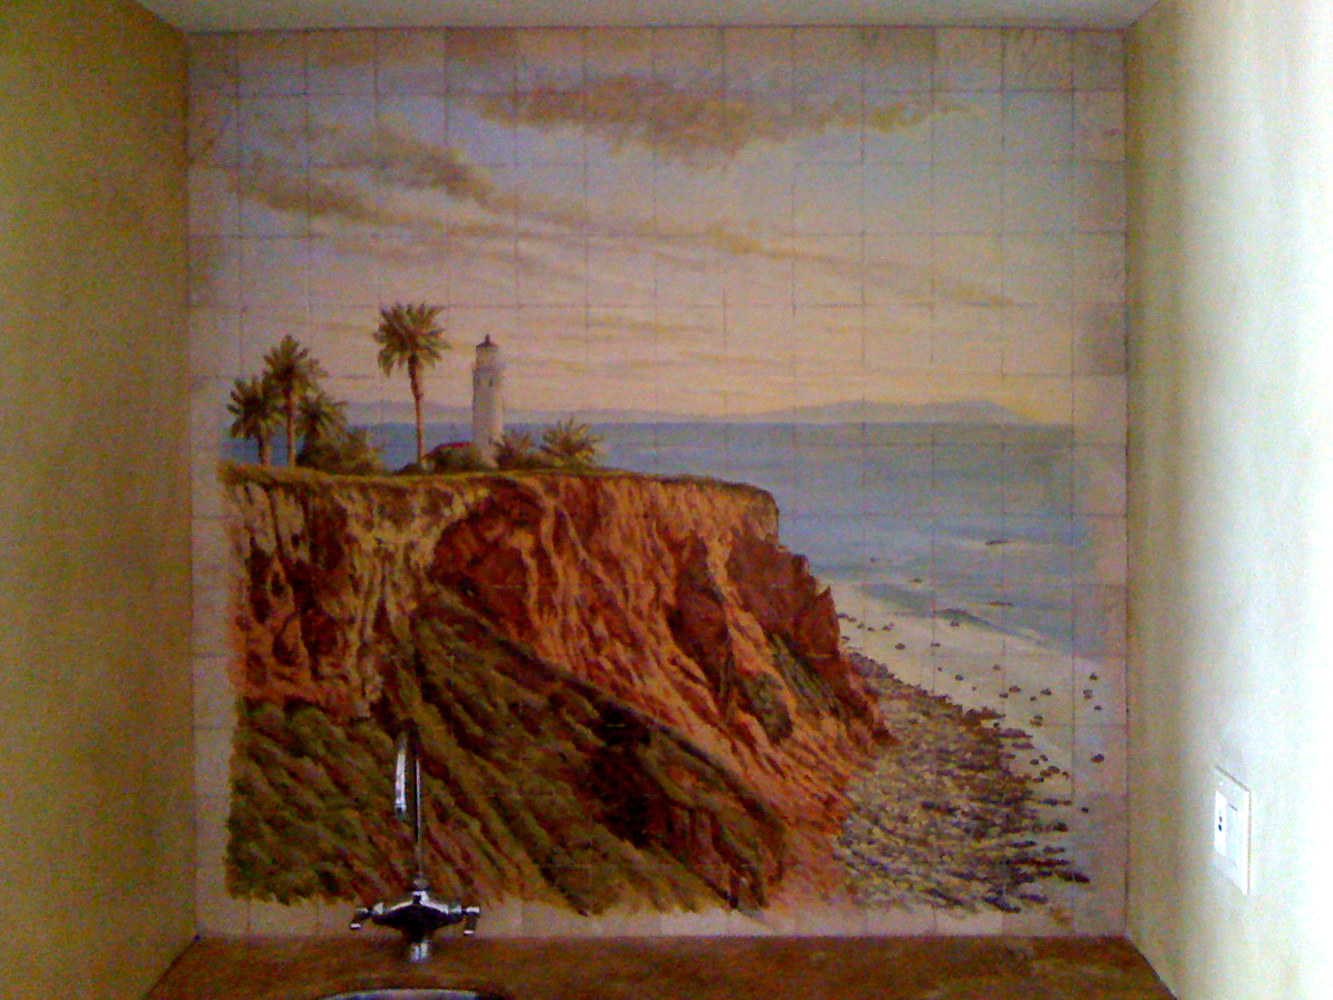 Palos Verdes Landscape on Tile Back Splash by Robert Milling